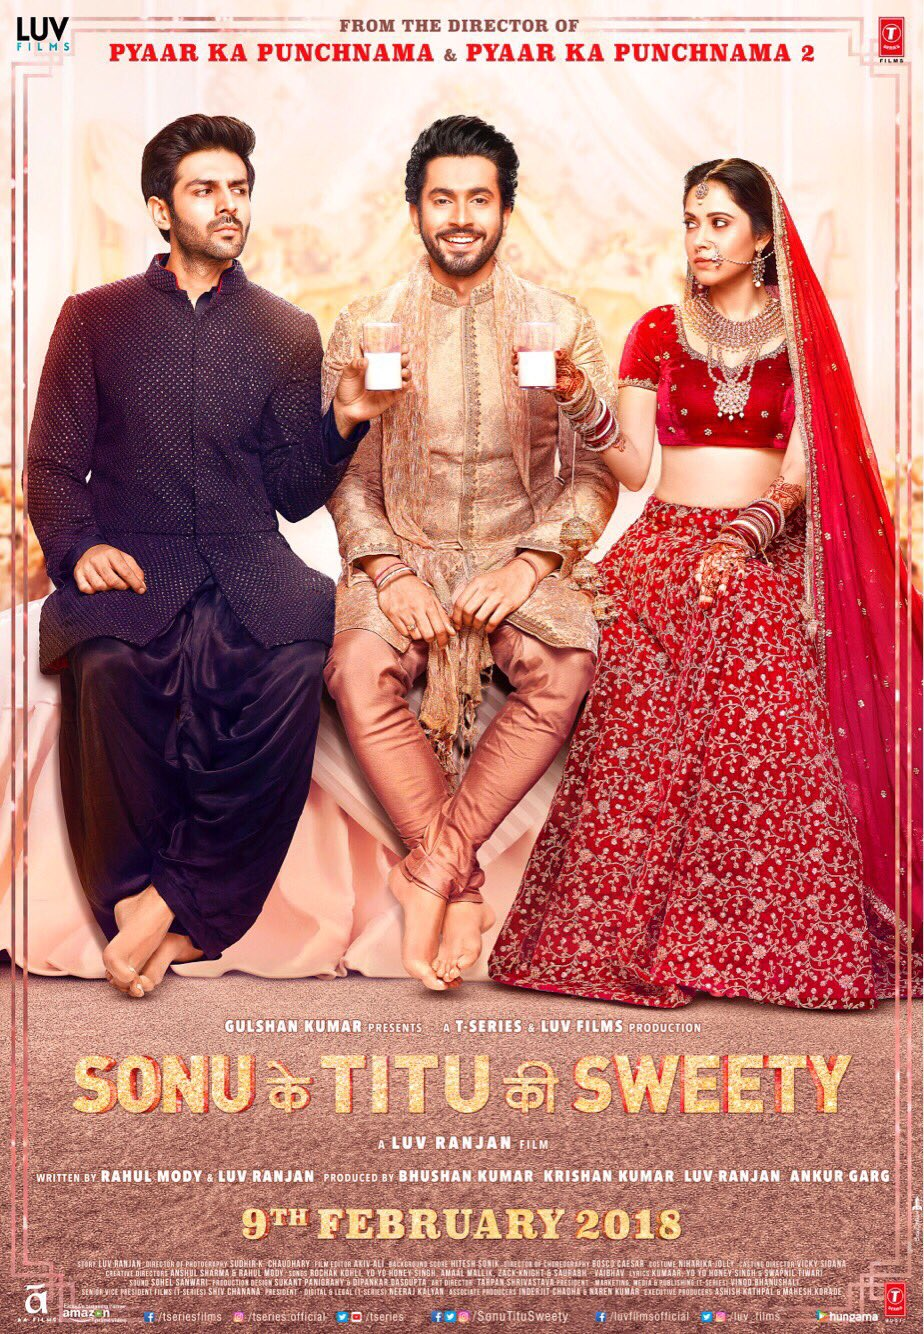 Sonu Ke Titu Ki Sweety (2018) Hindi Full Movie PDVDRip 1GB x264 *Watch Online*